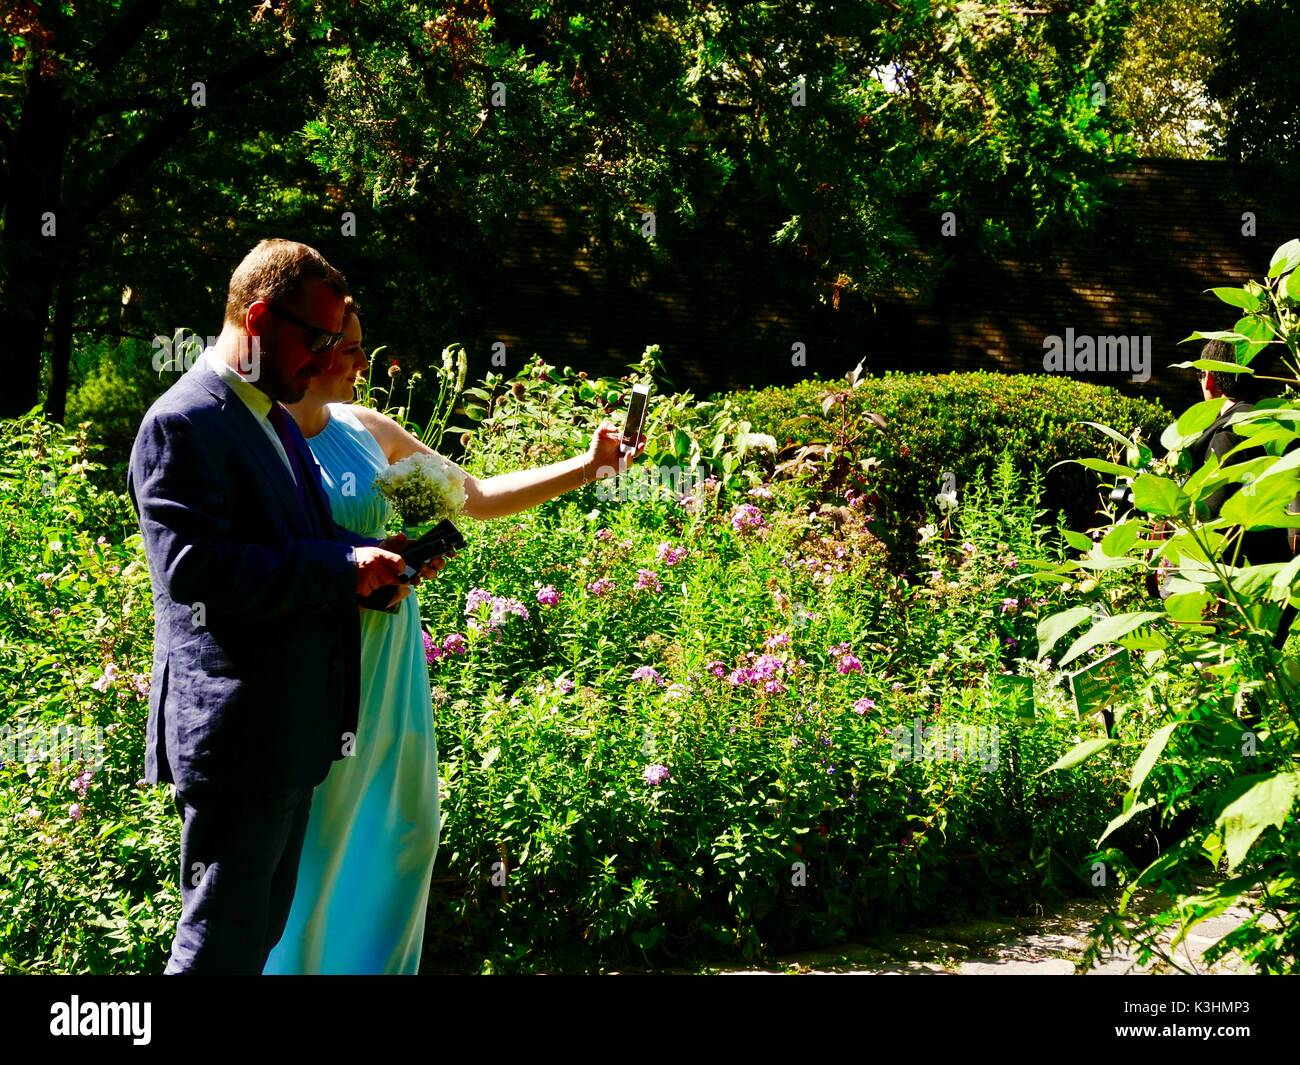 Couple, members of wedding party in fancy clothes, taking selfie in garden. Central Park, Manhattan, New York, NY, USA - Stock Image